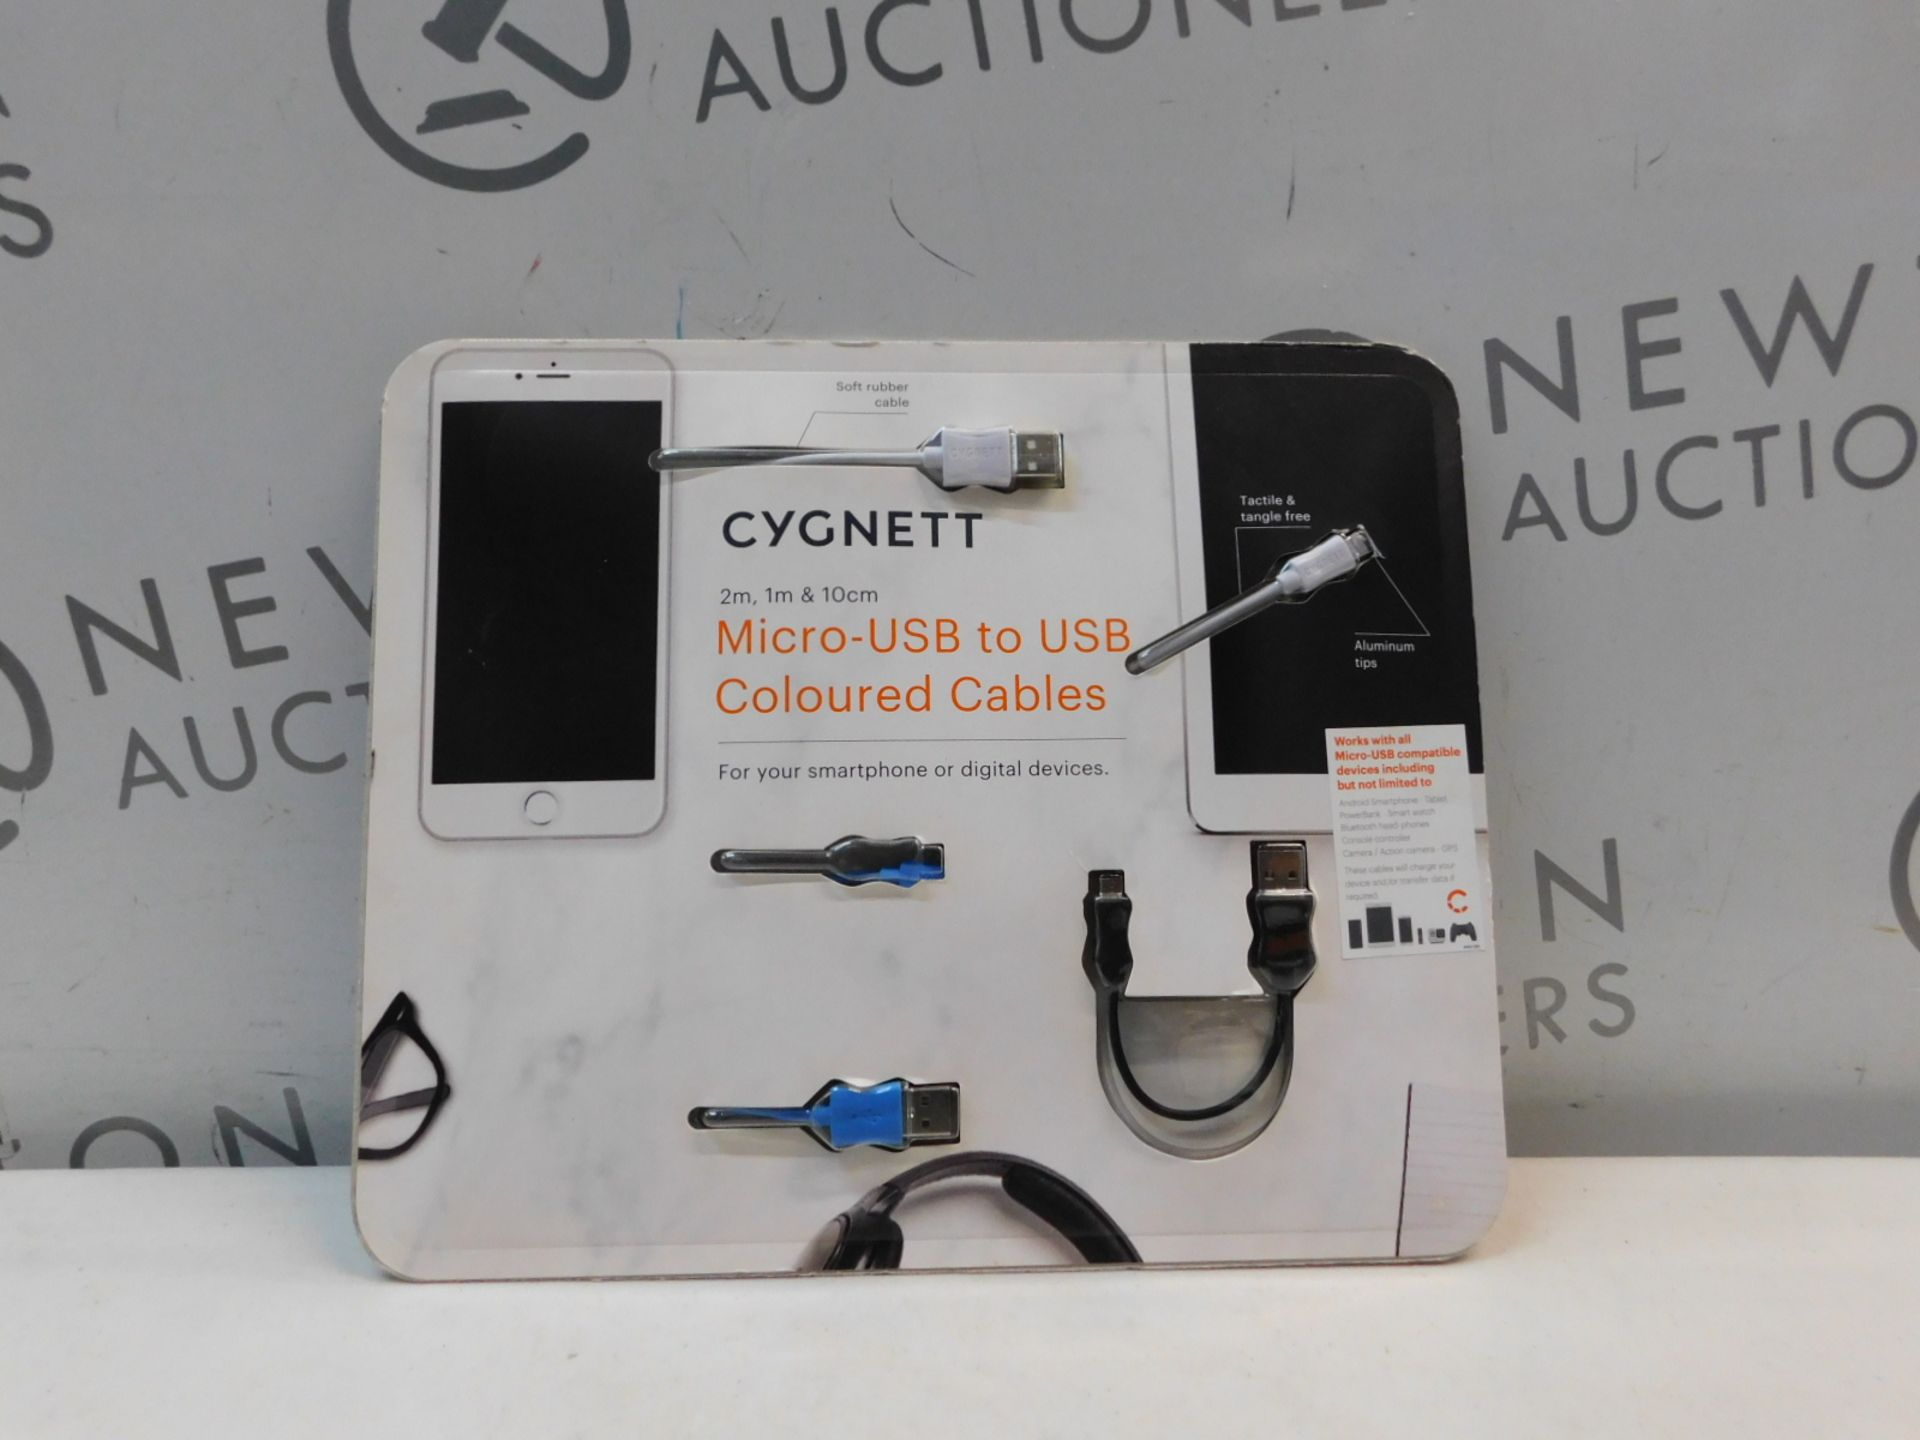 1 BRAND NEW PACK OF 3 CYGNETT MICRO USB TO USB COLOURED CABLES RRP £29.99